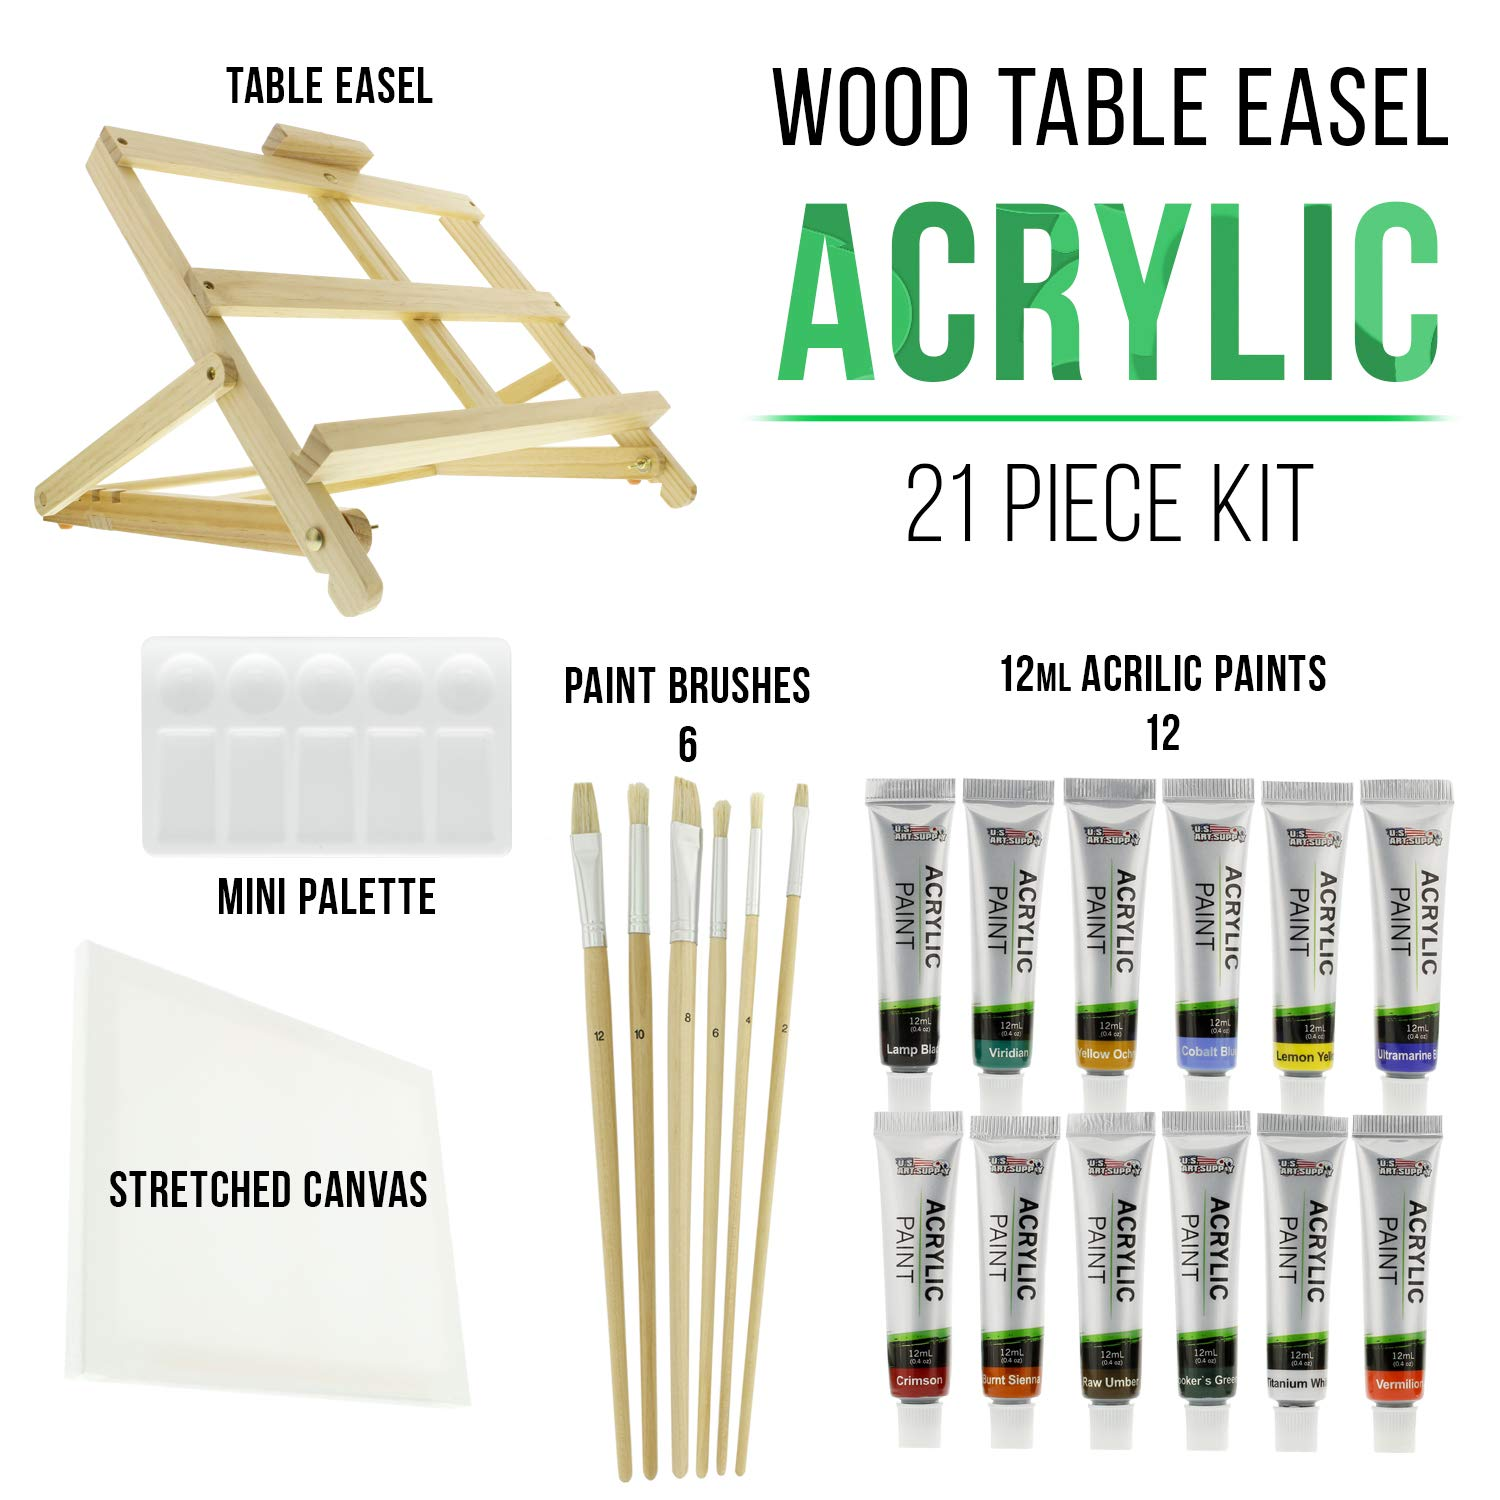 US Art Supply 21-Piece Acrylic Painting Table Easel Set with, 12-Tubes Acrylic Painting Colors, 11''x14'' Stretched Canvas, 6 Artist Brushes, Plastic Palette with 10 Wells by US Art Supply (Image #1)